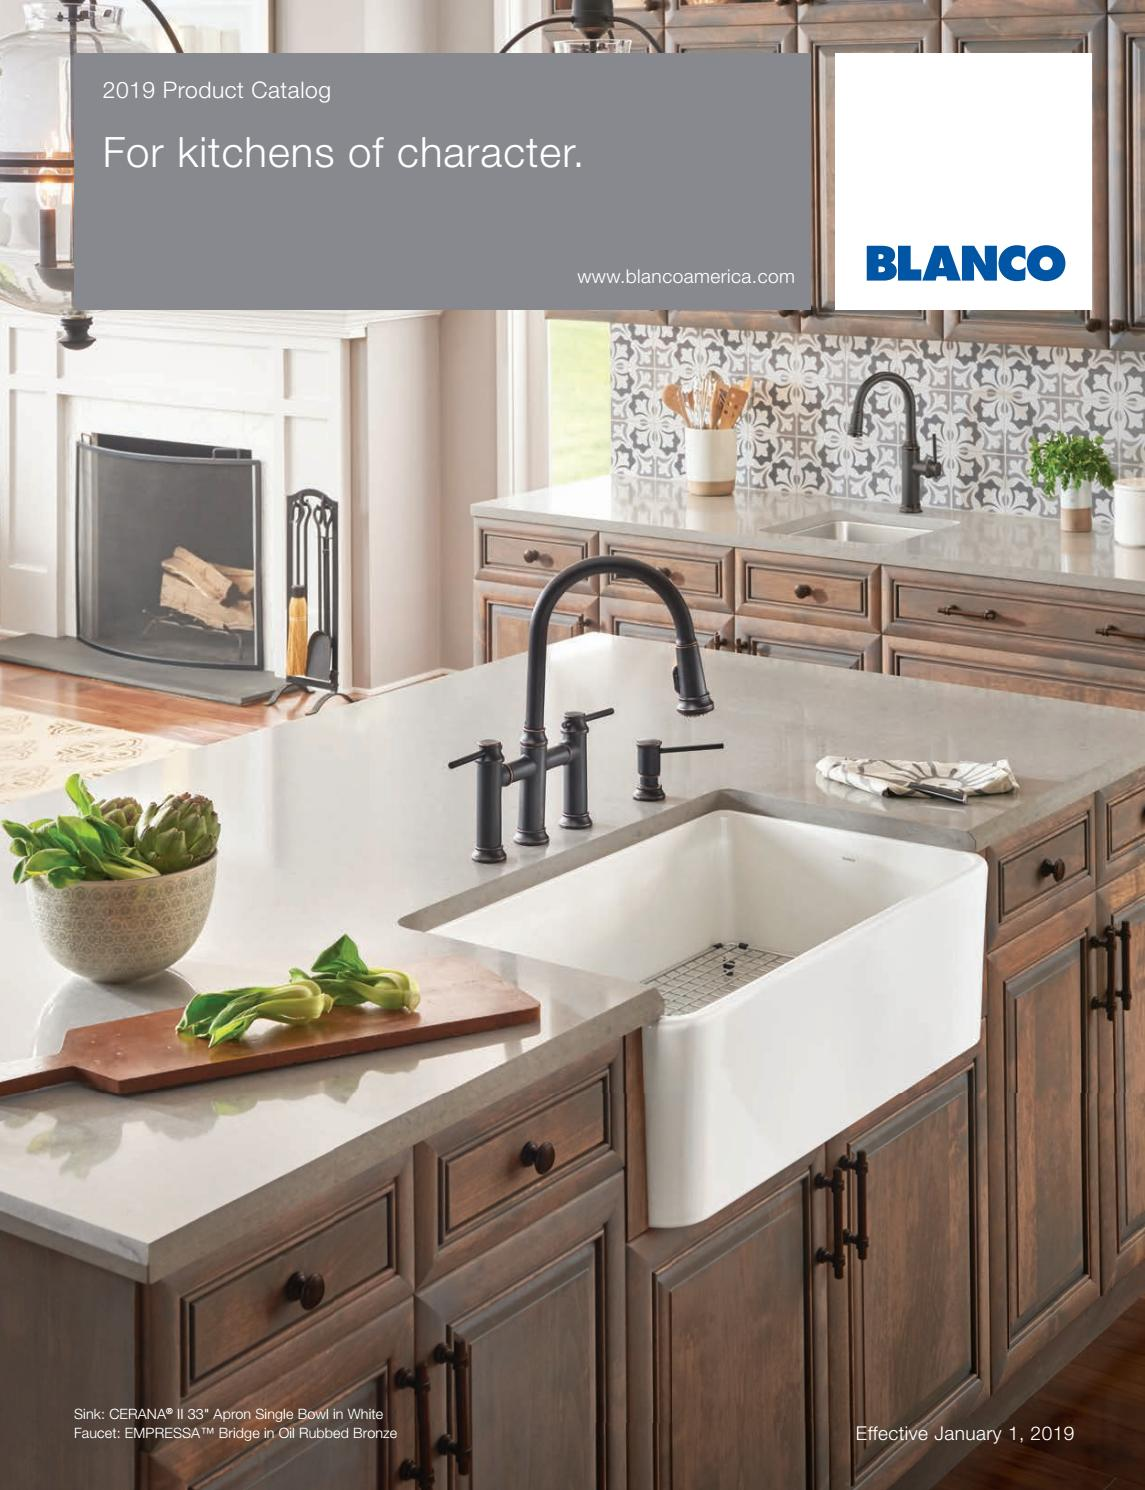 Blanco 440851 Under mount Sink Clips 10-Pack